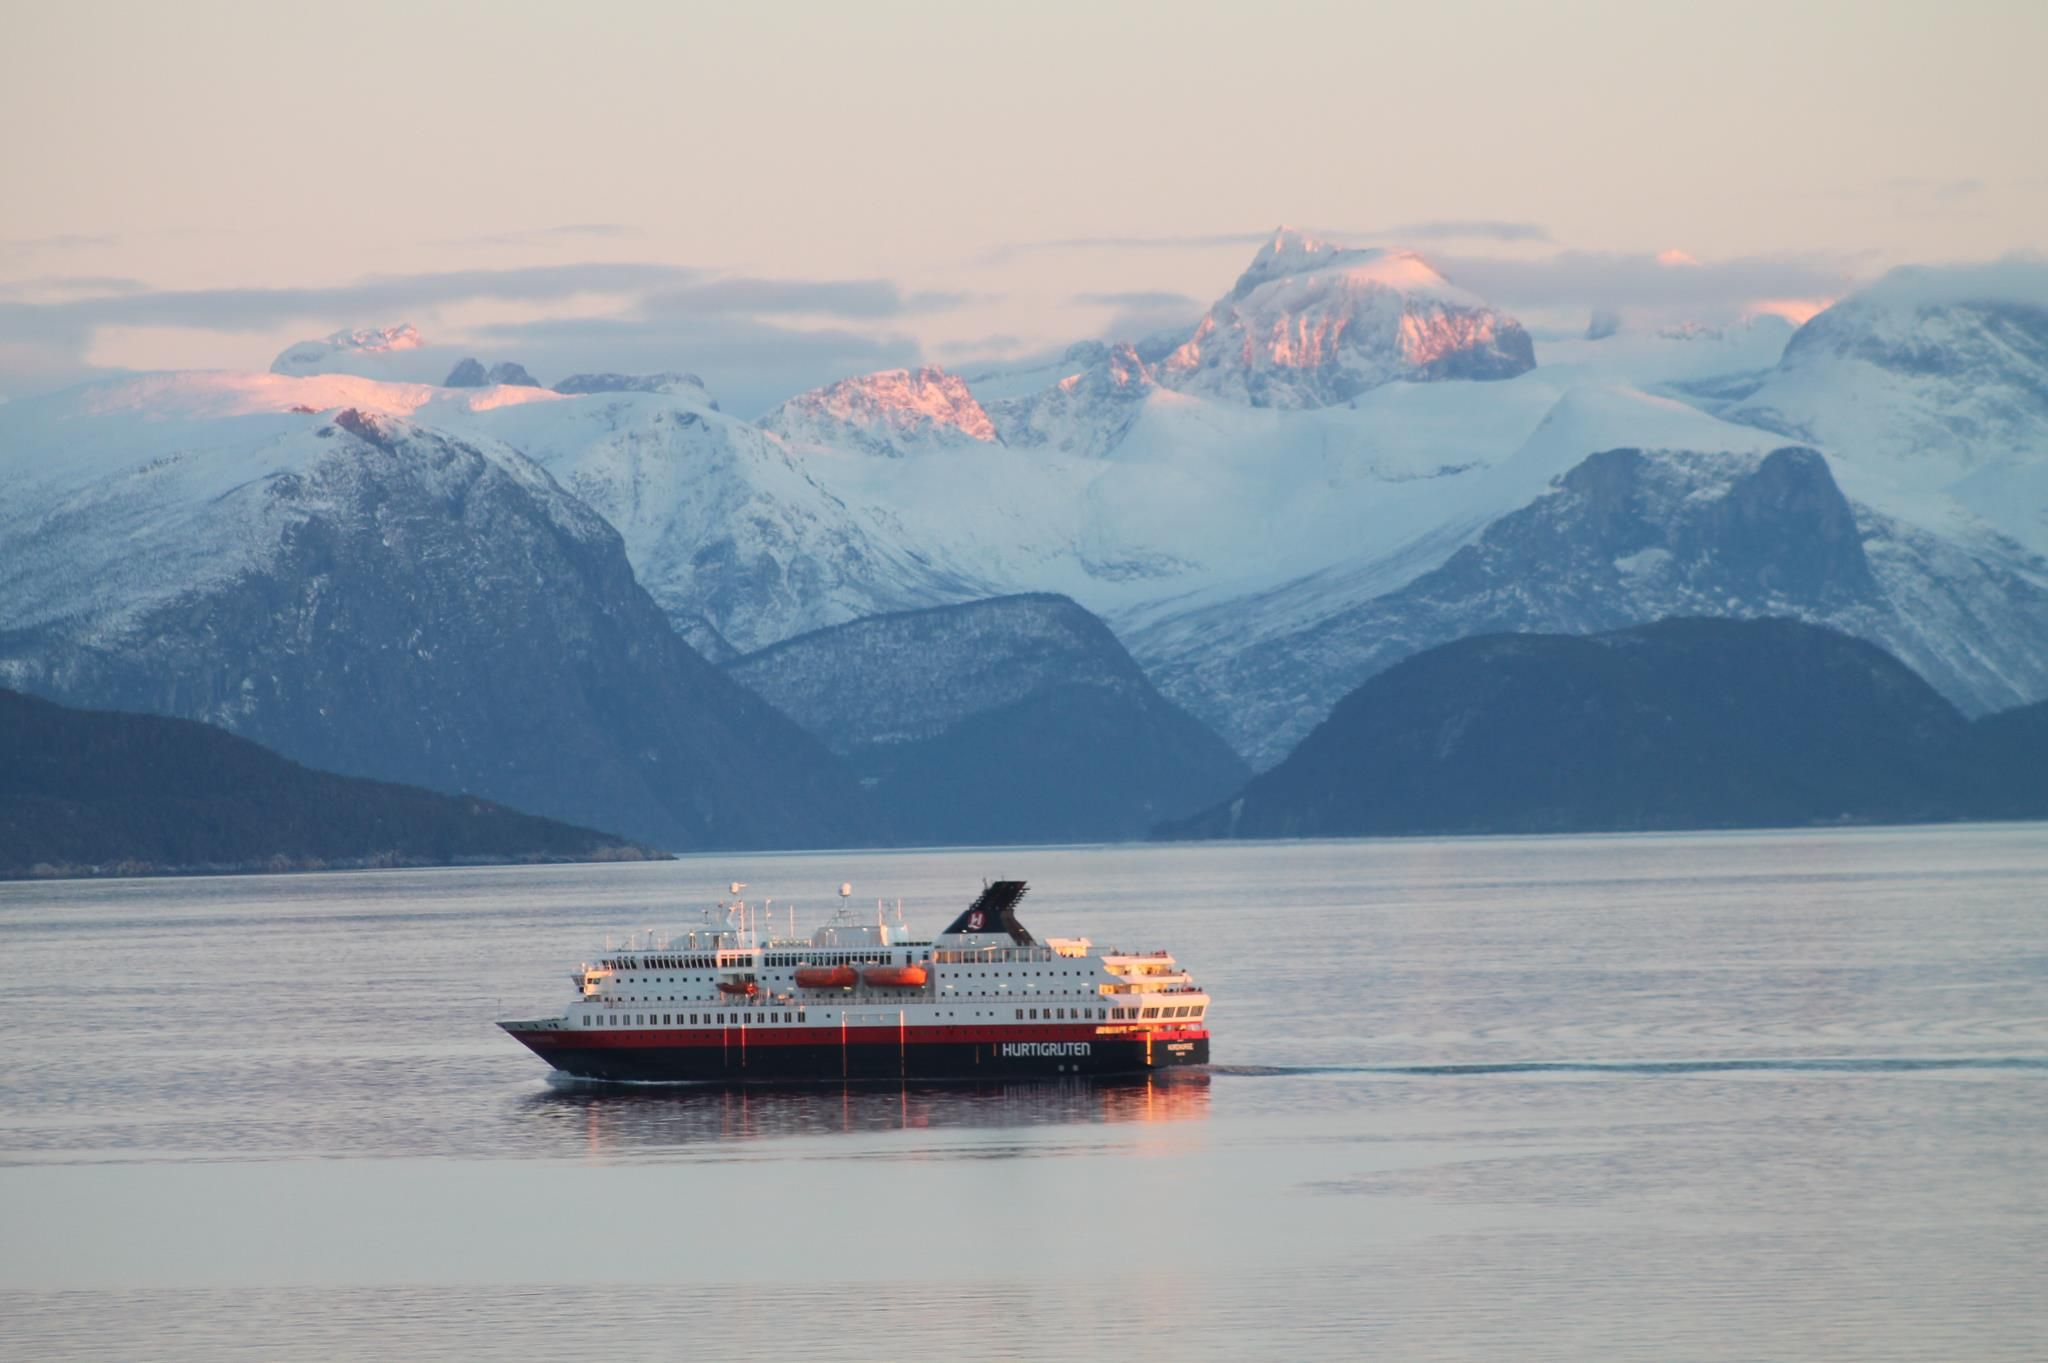 This Is The Norwegian Hurtigruten On A Cruise Along The